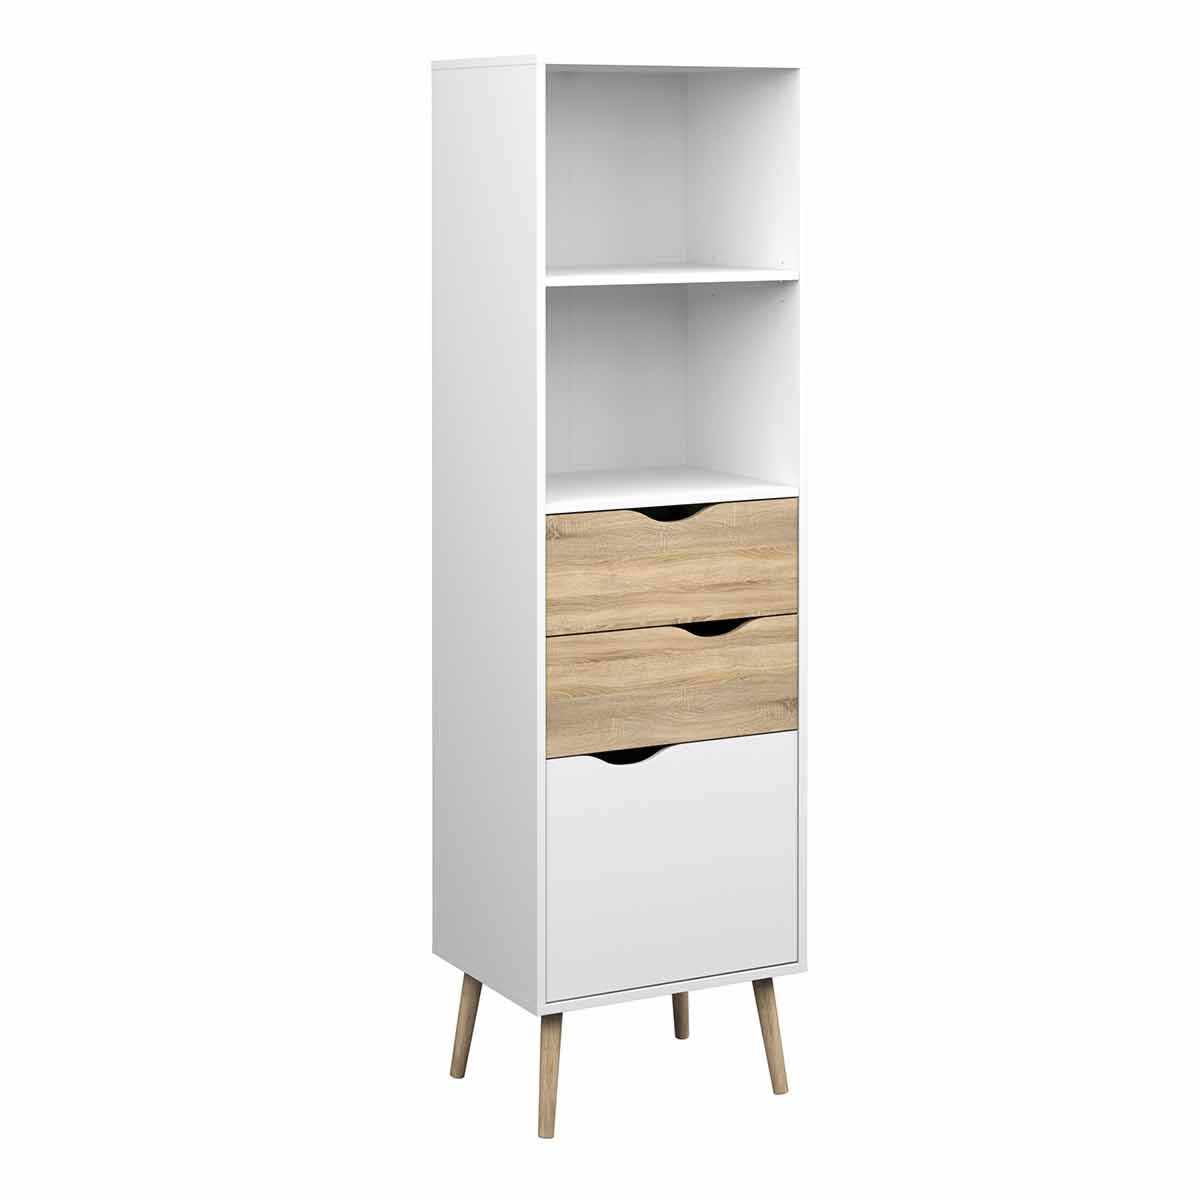 Oslo Bookcase with 2 Drawers 1 Door White Light Oak